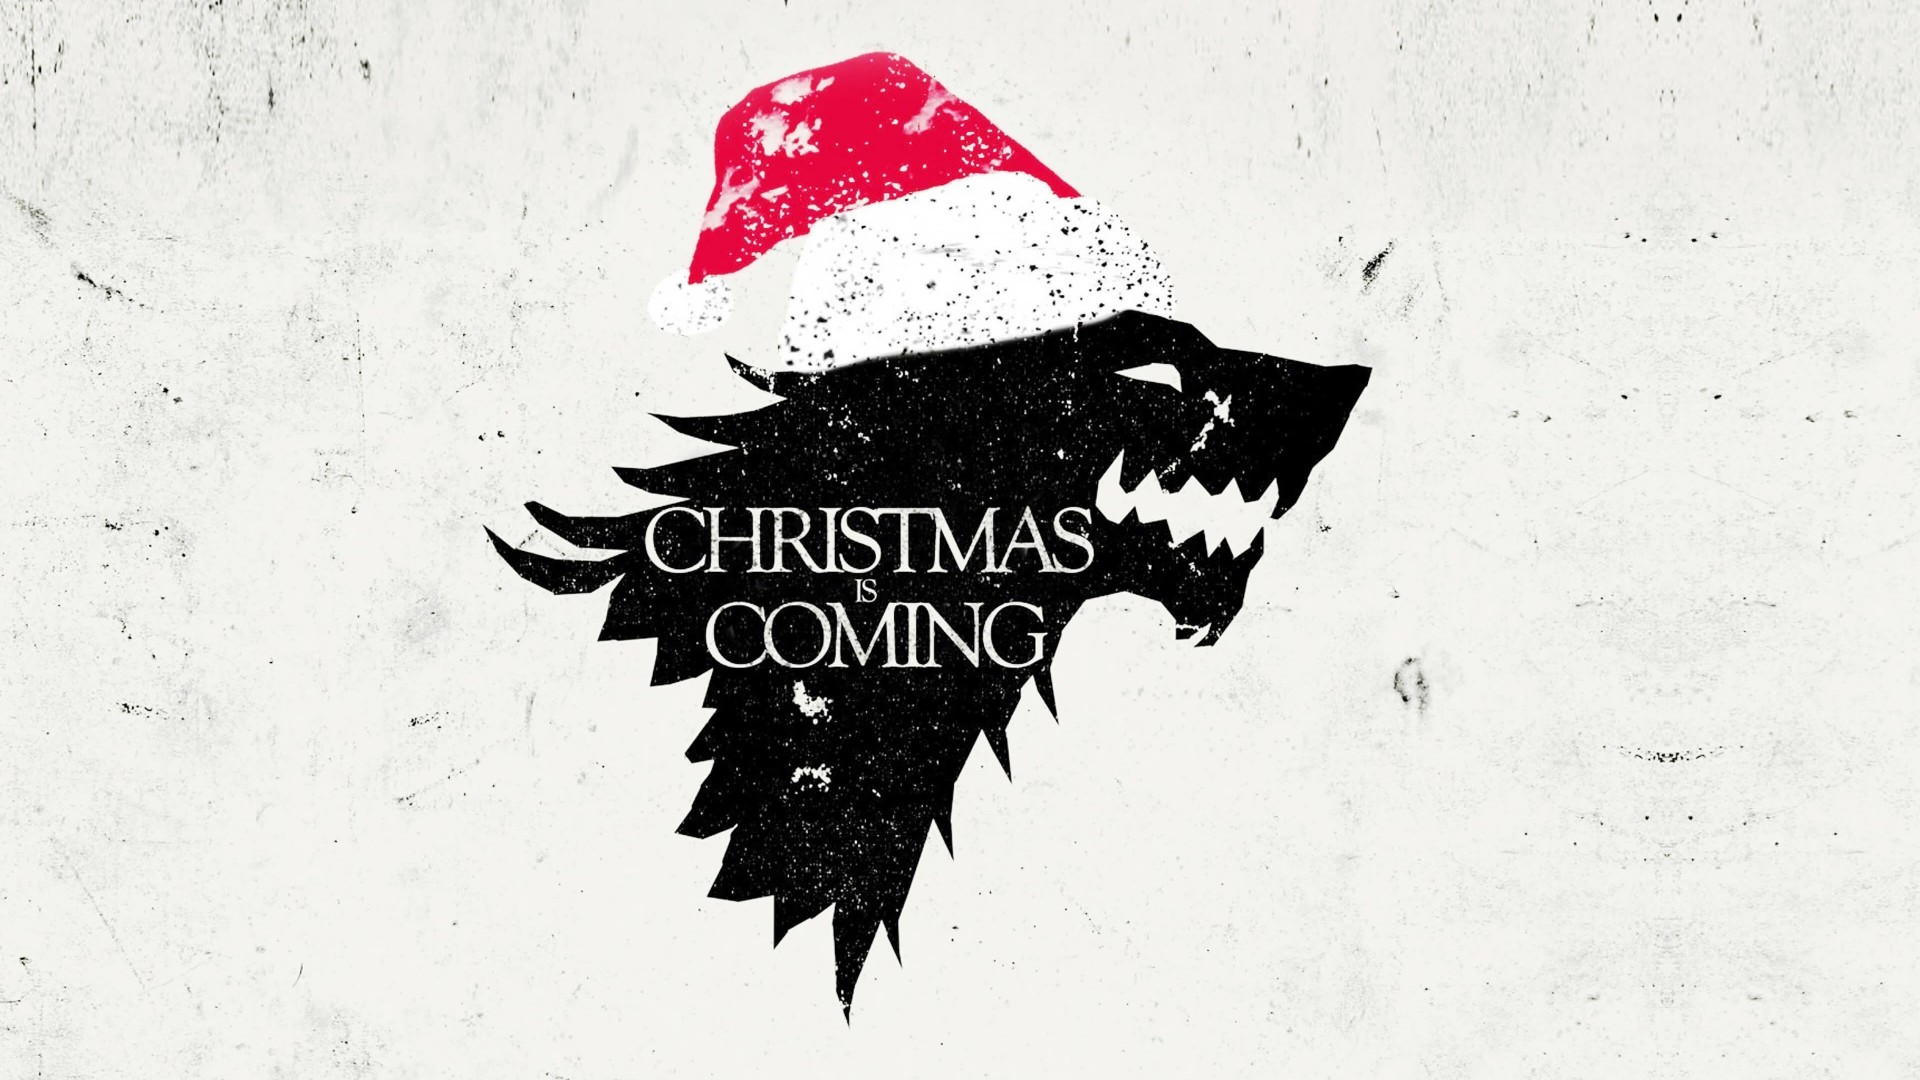 Christmas is Coming Wallpaper for Desktop 1920x1080